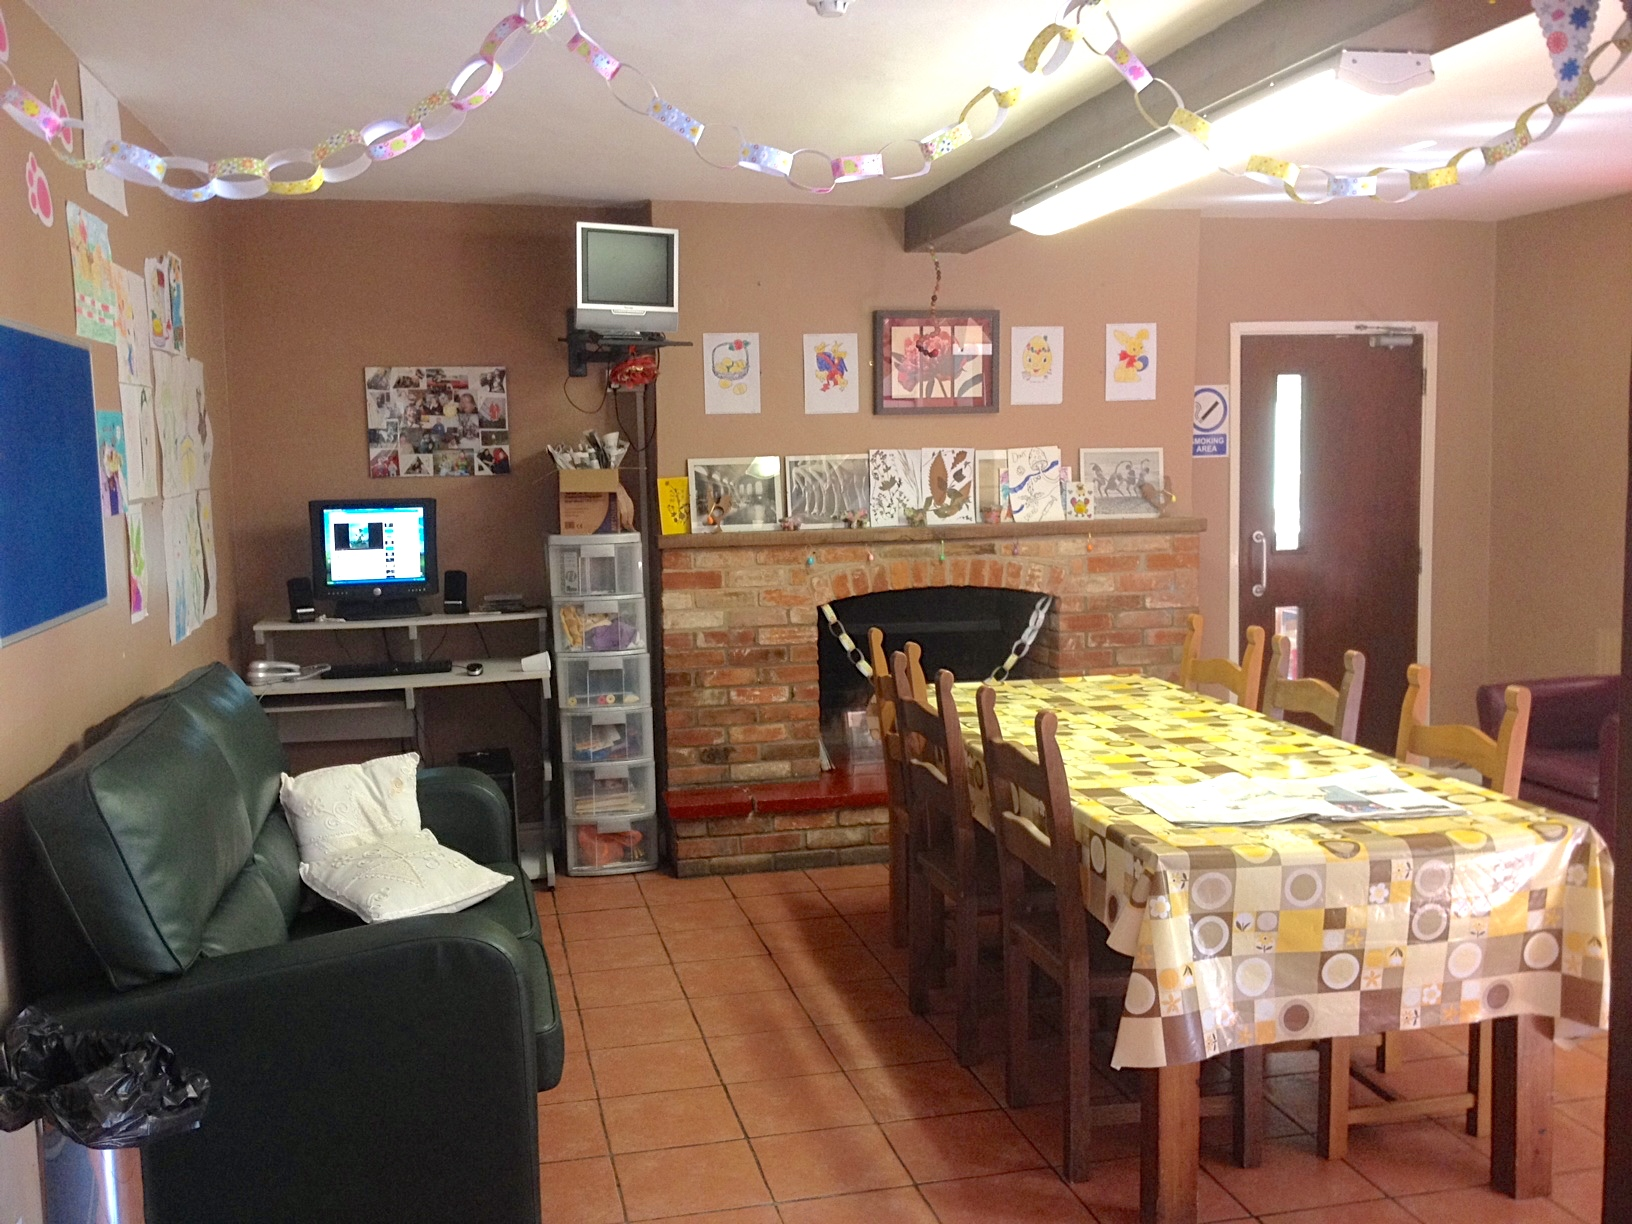 Care home activities room